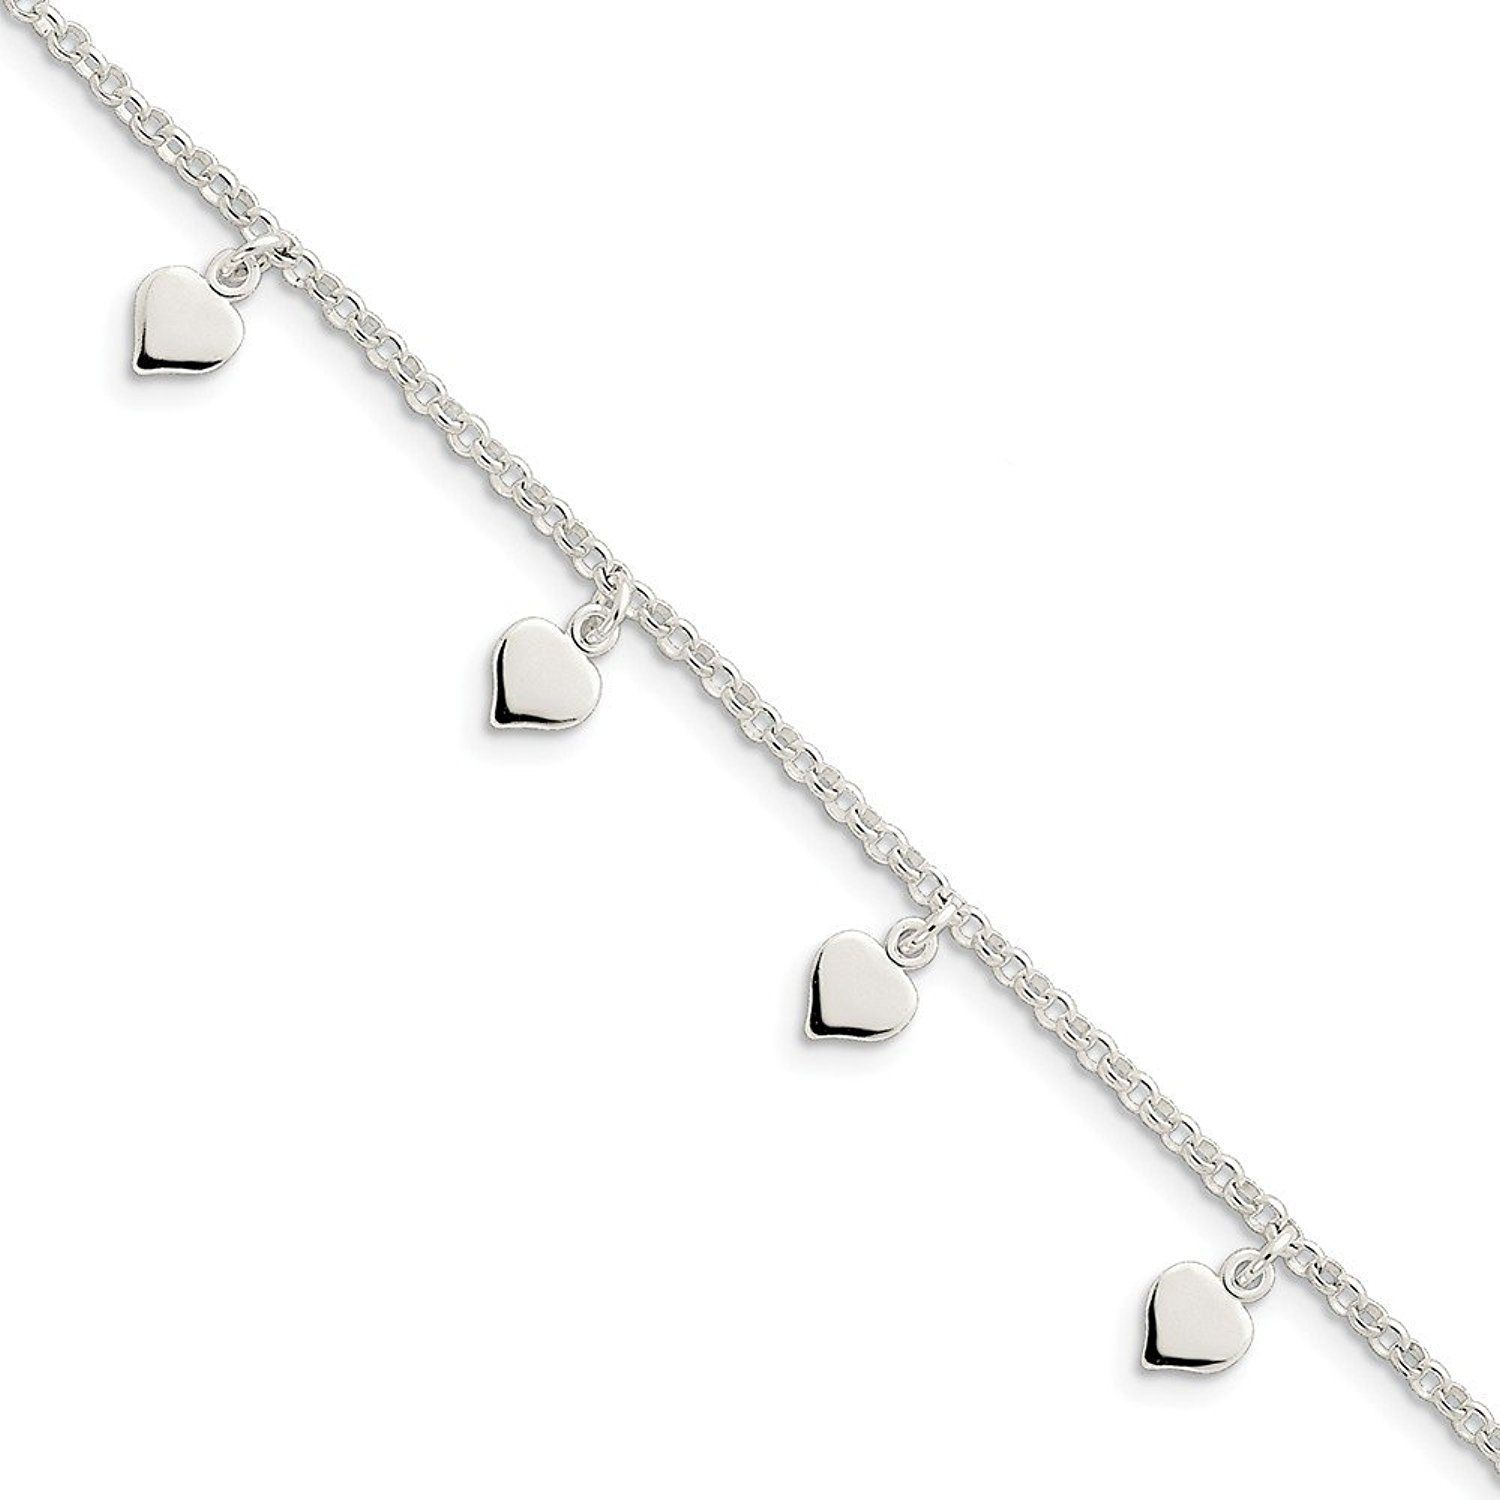 Solid 925 Sterling Silver Polished Hearts Anklet 10